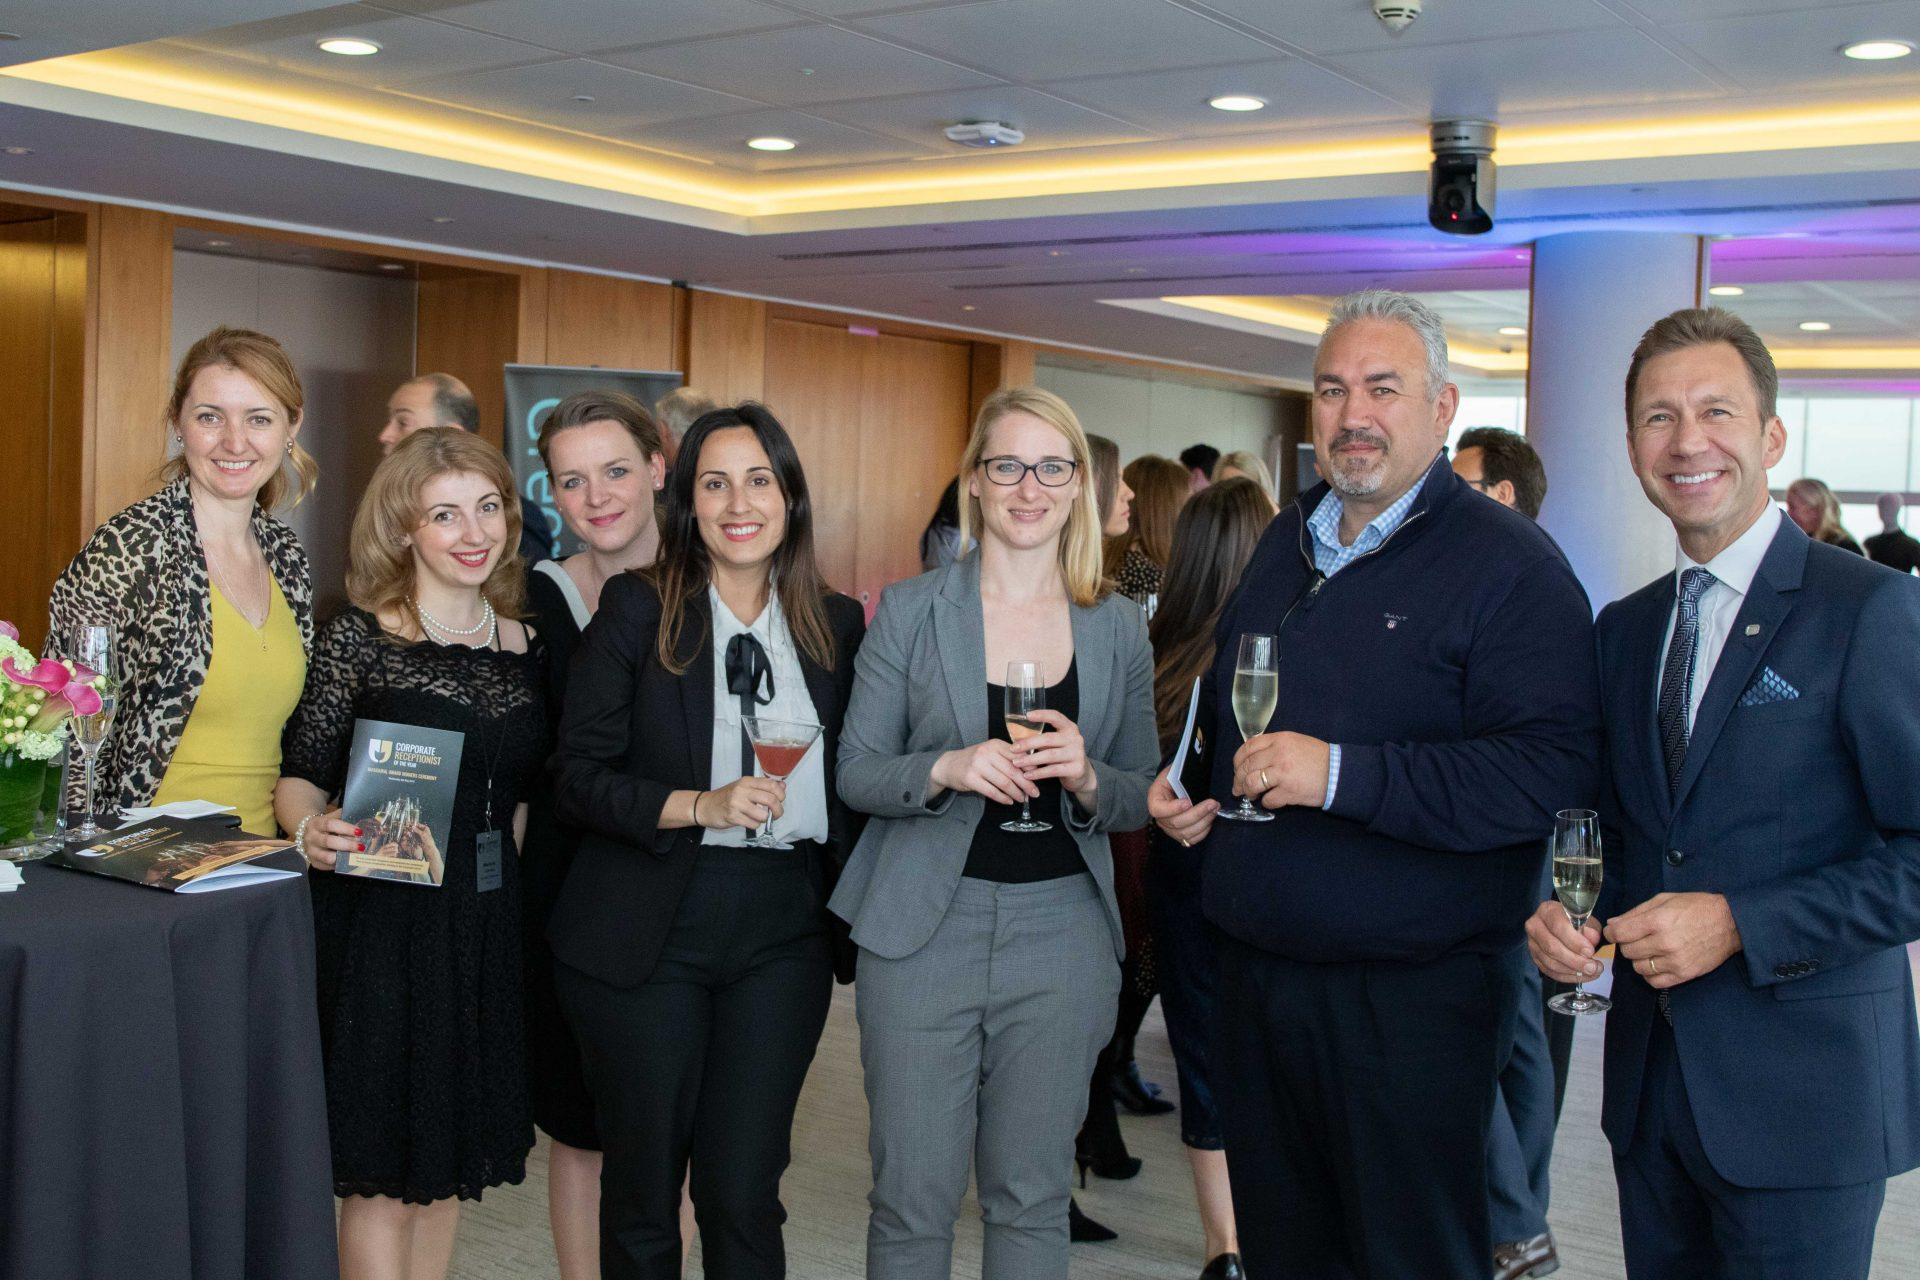 Corporate receptionist of the year reward ceremony 2019 smiling attendees